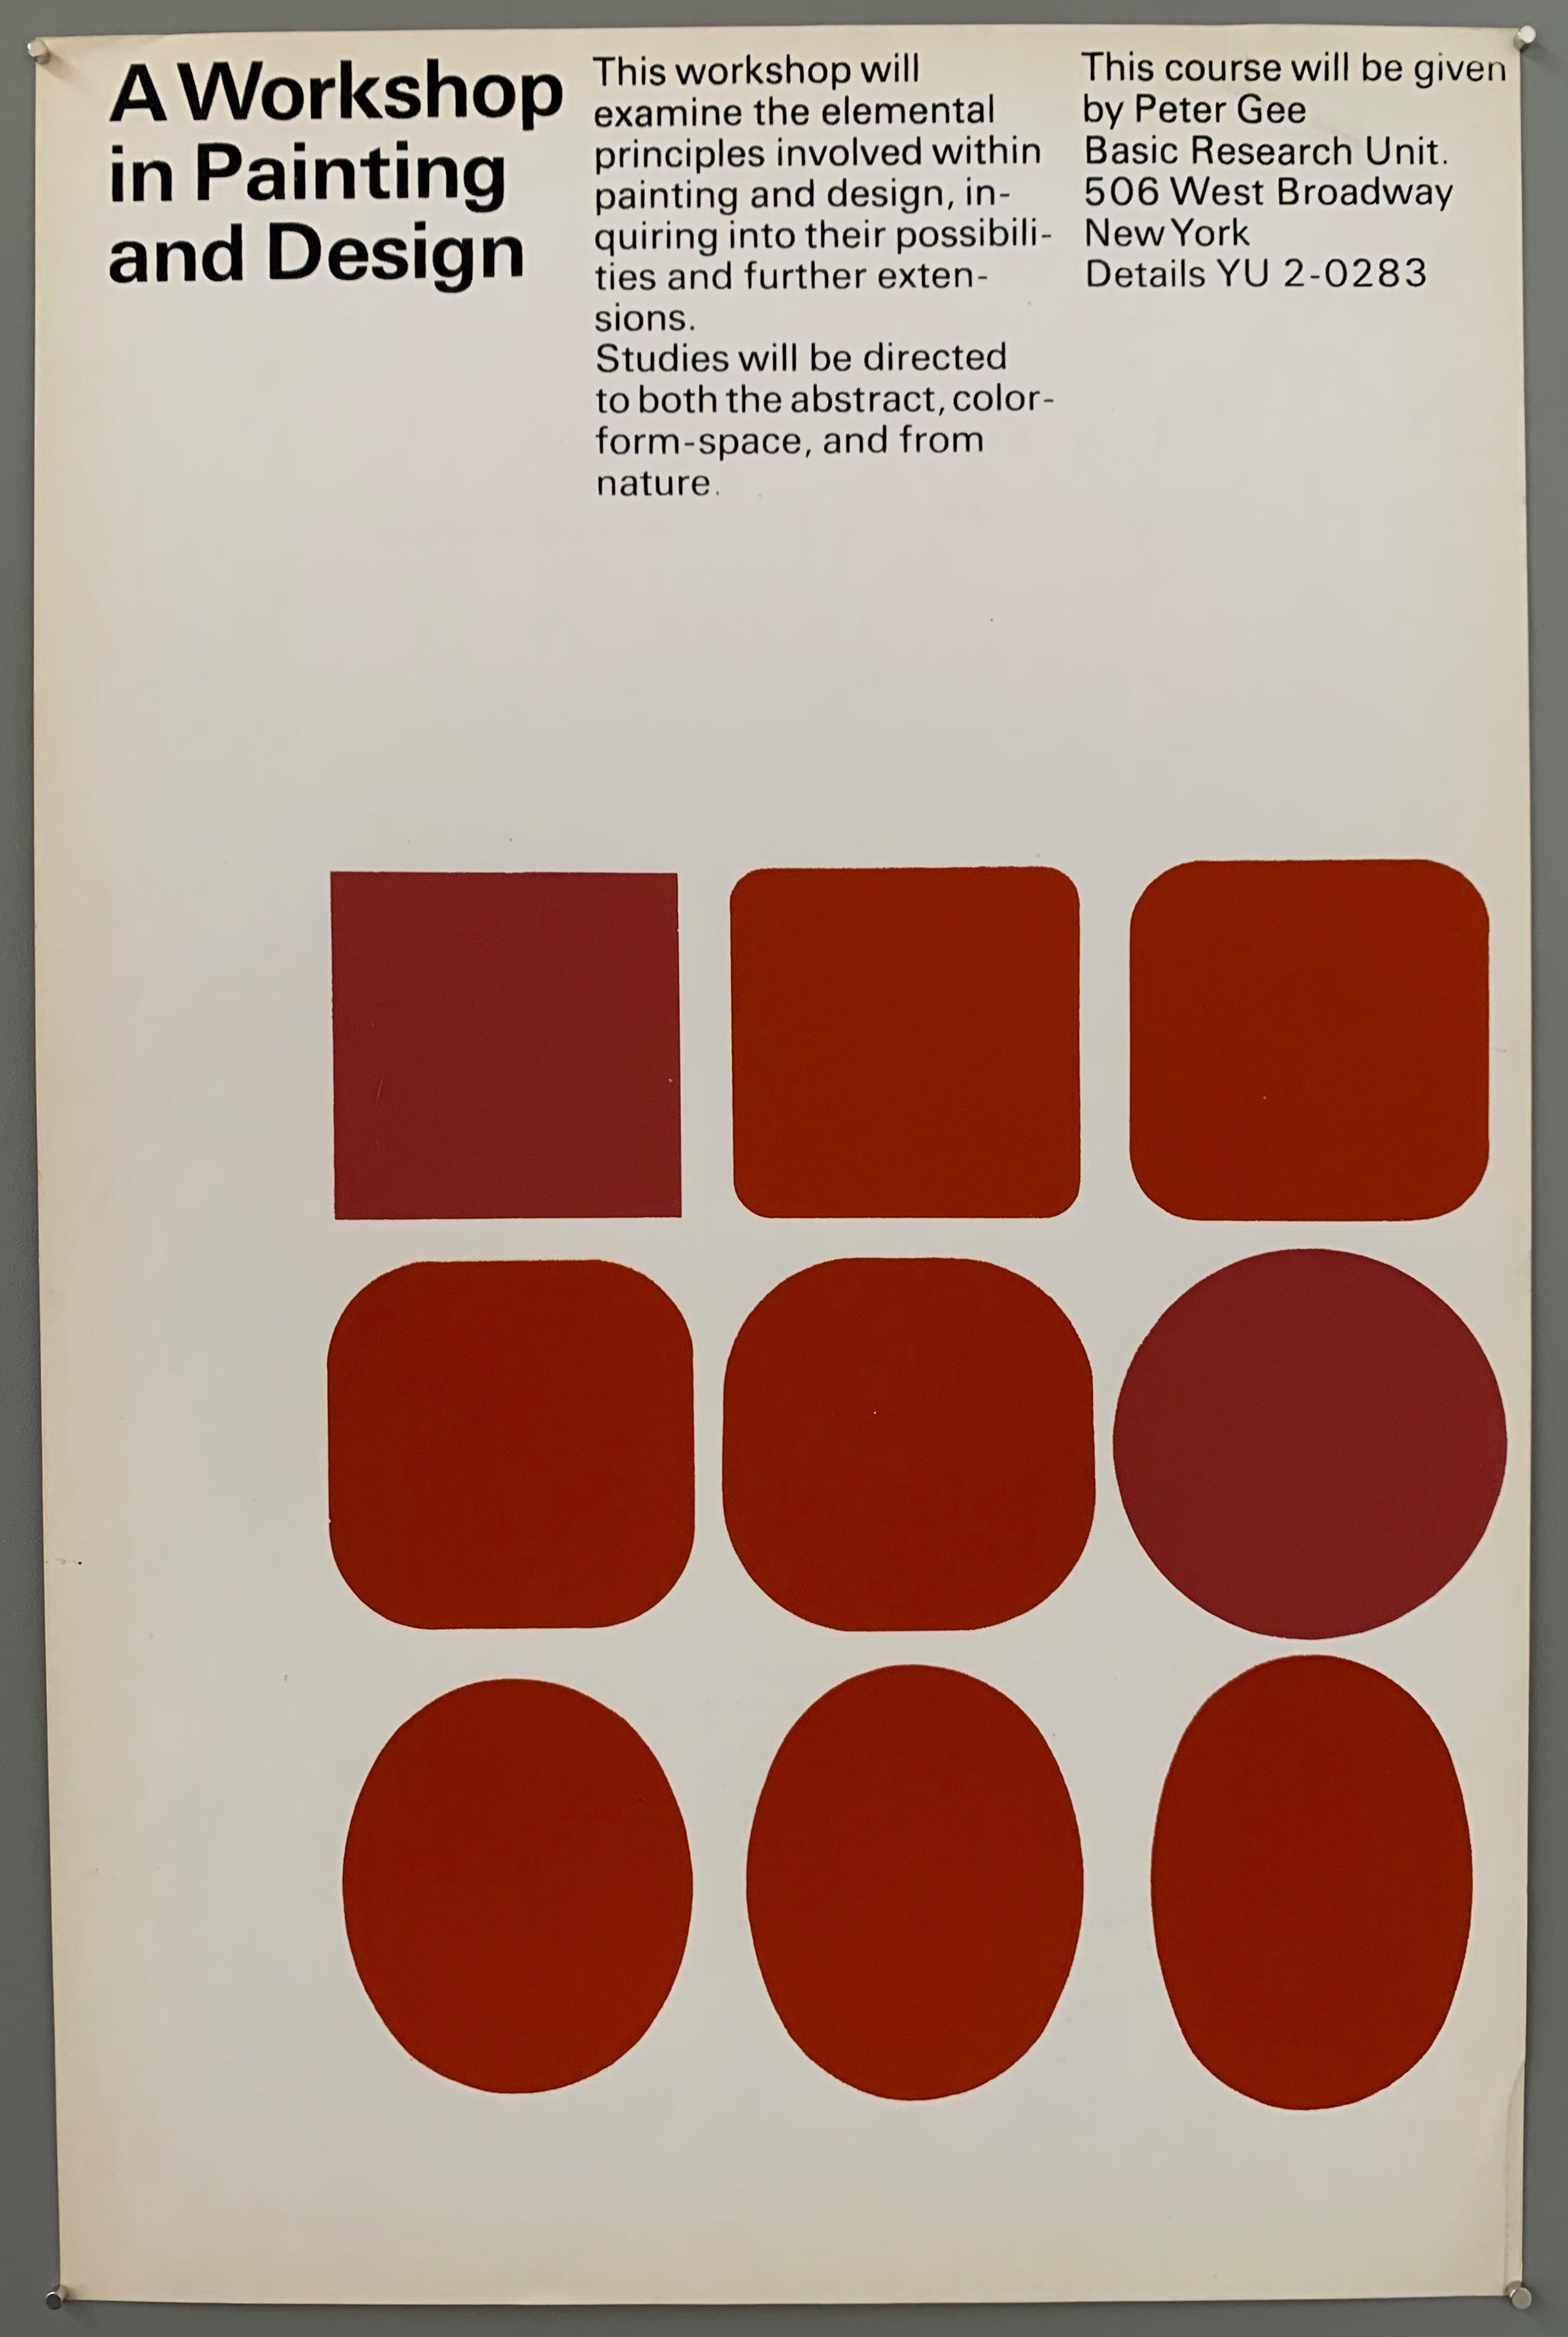 White poster with red squares and ovals